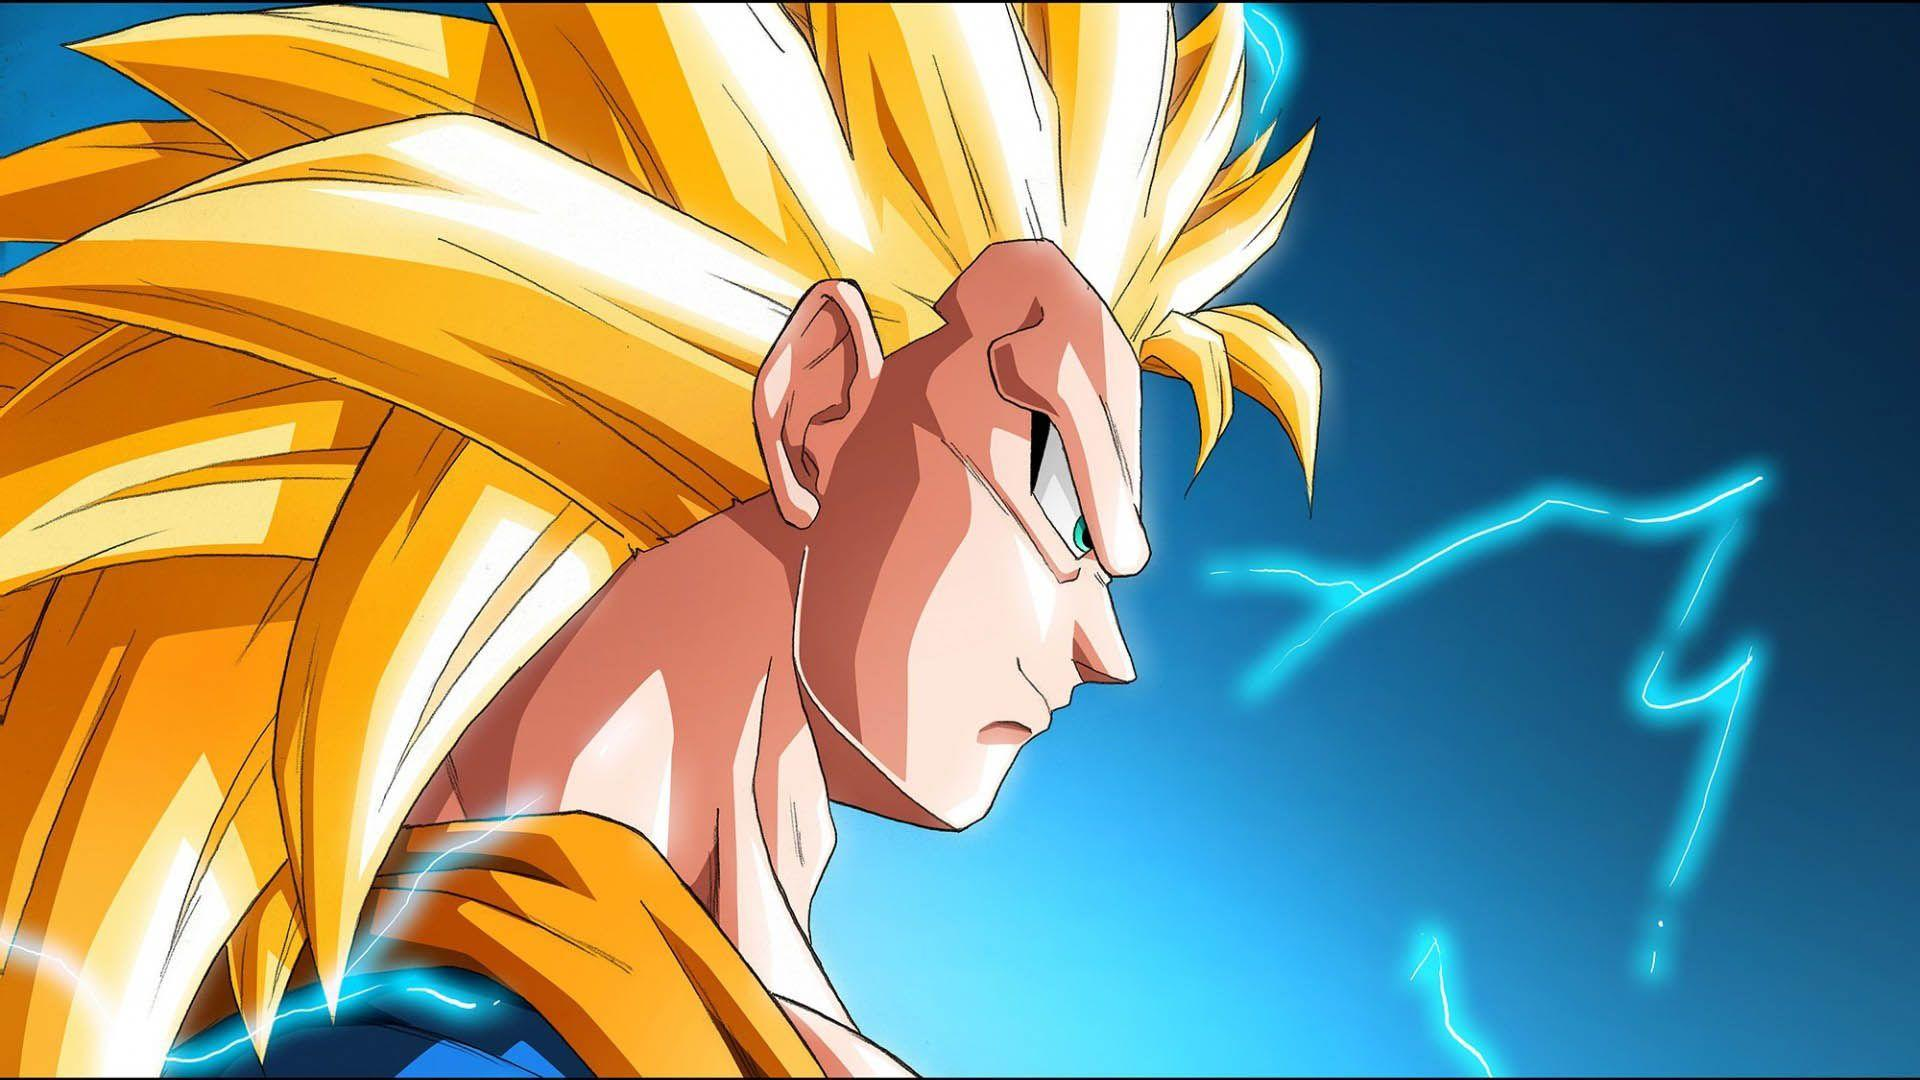 Goku Super Saiyan 3 Wallpapers Wallpaper Cave